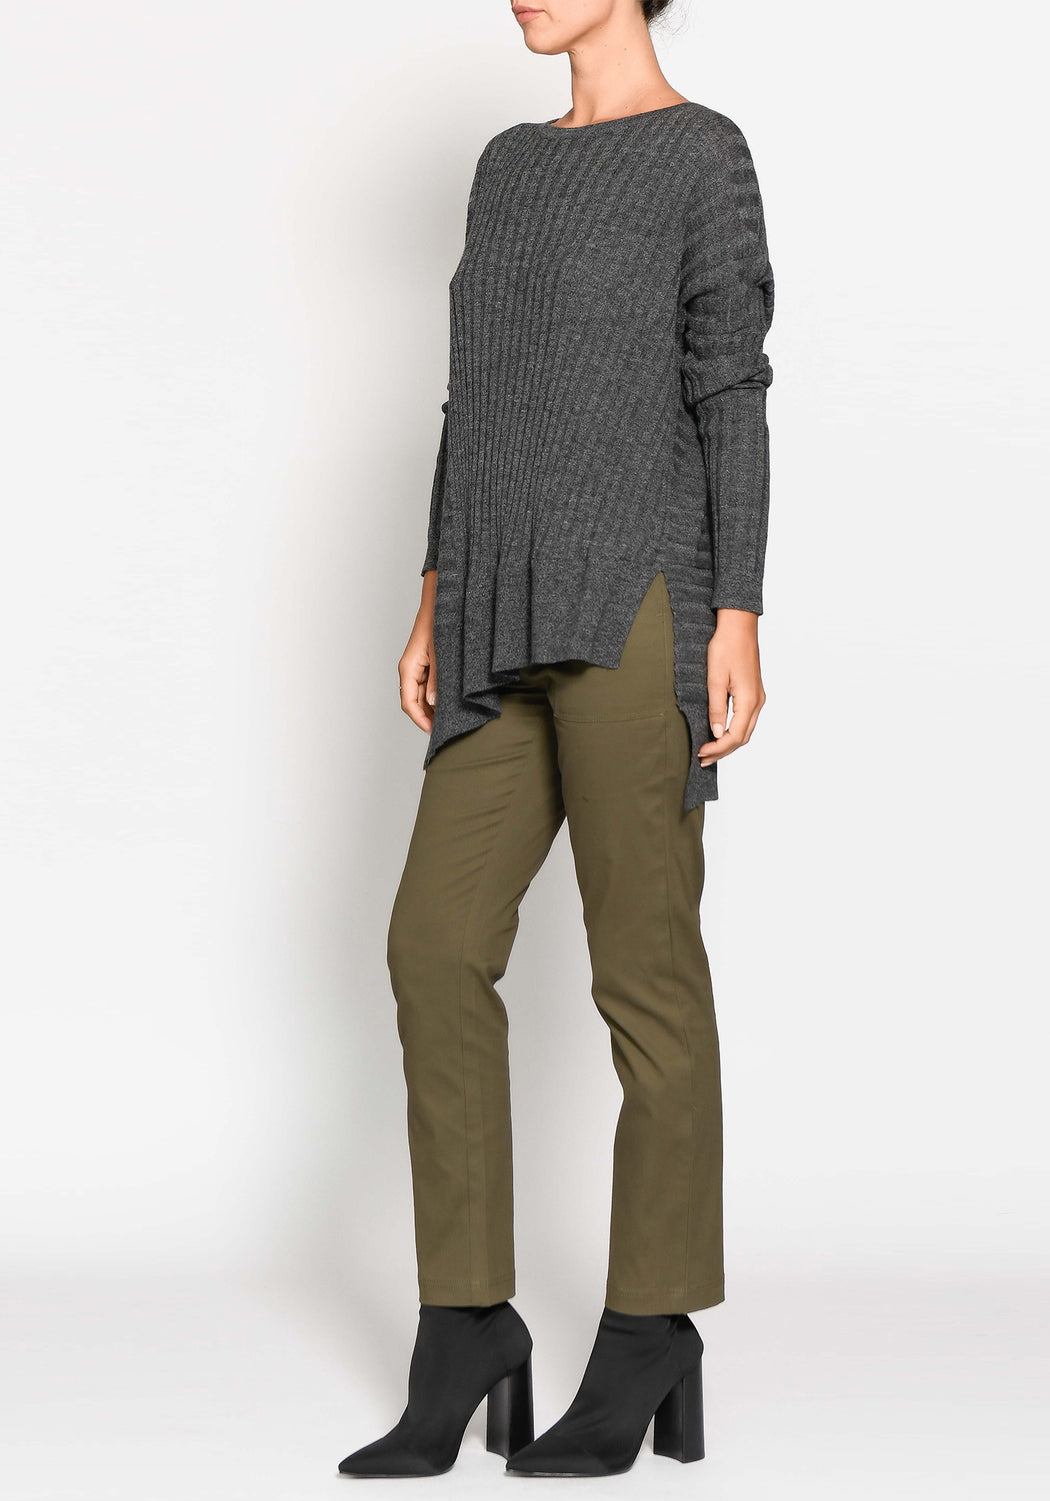 Scope Panelled Knit